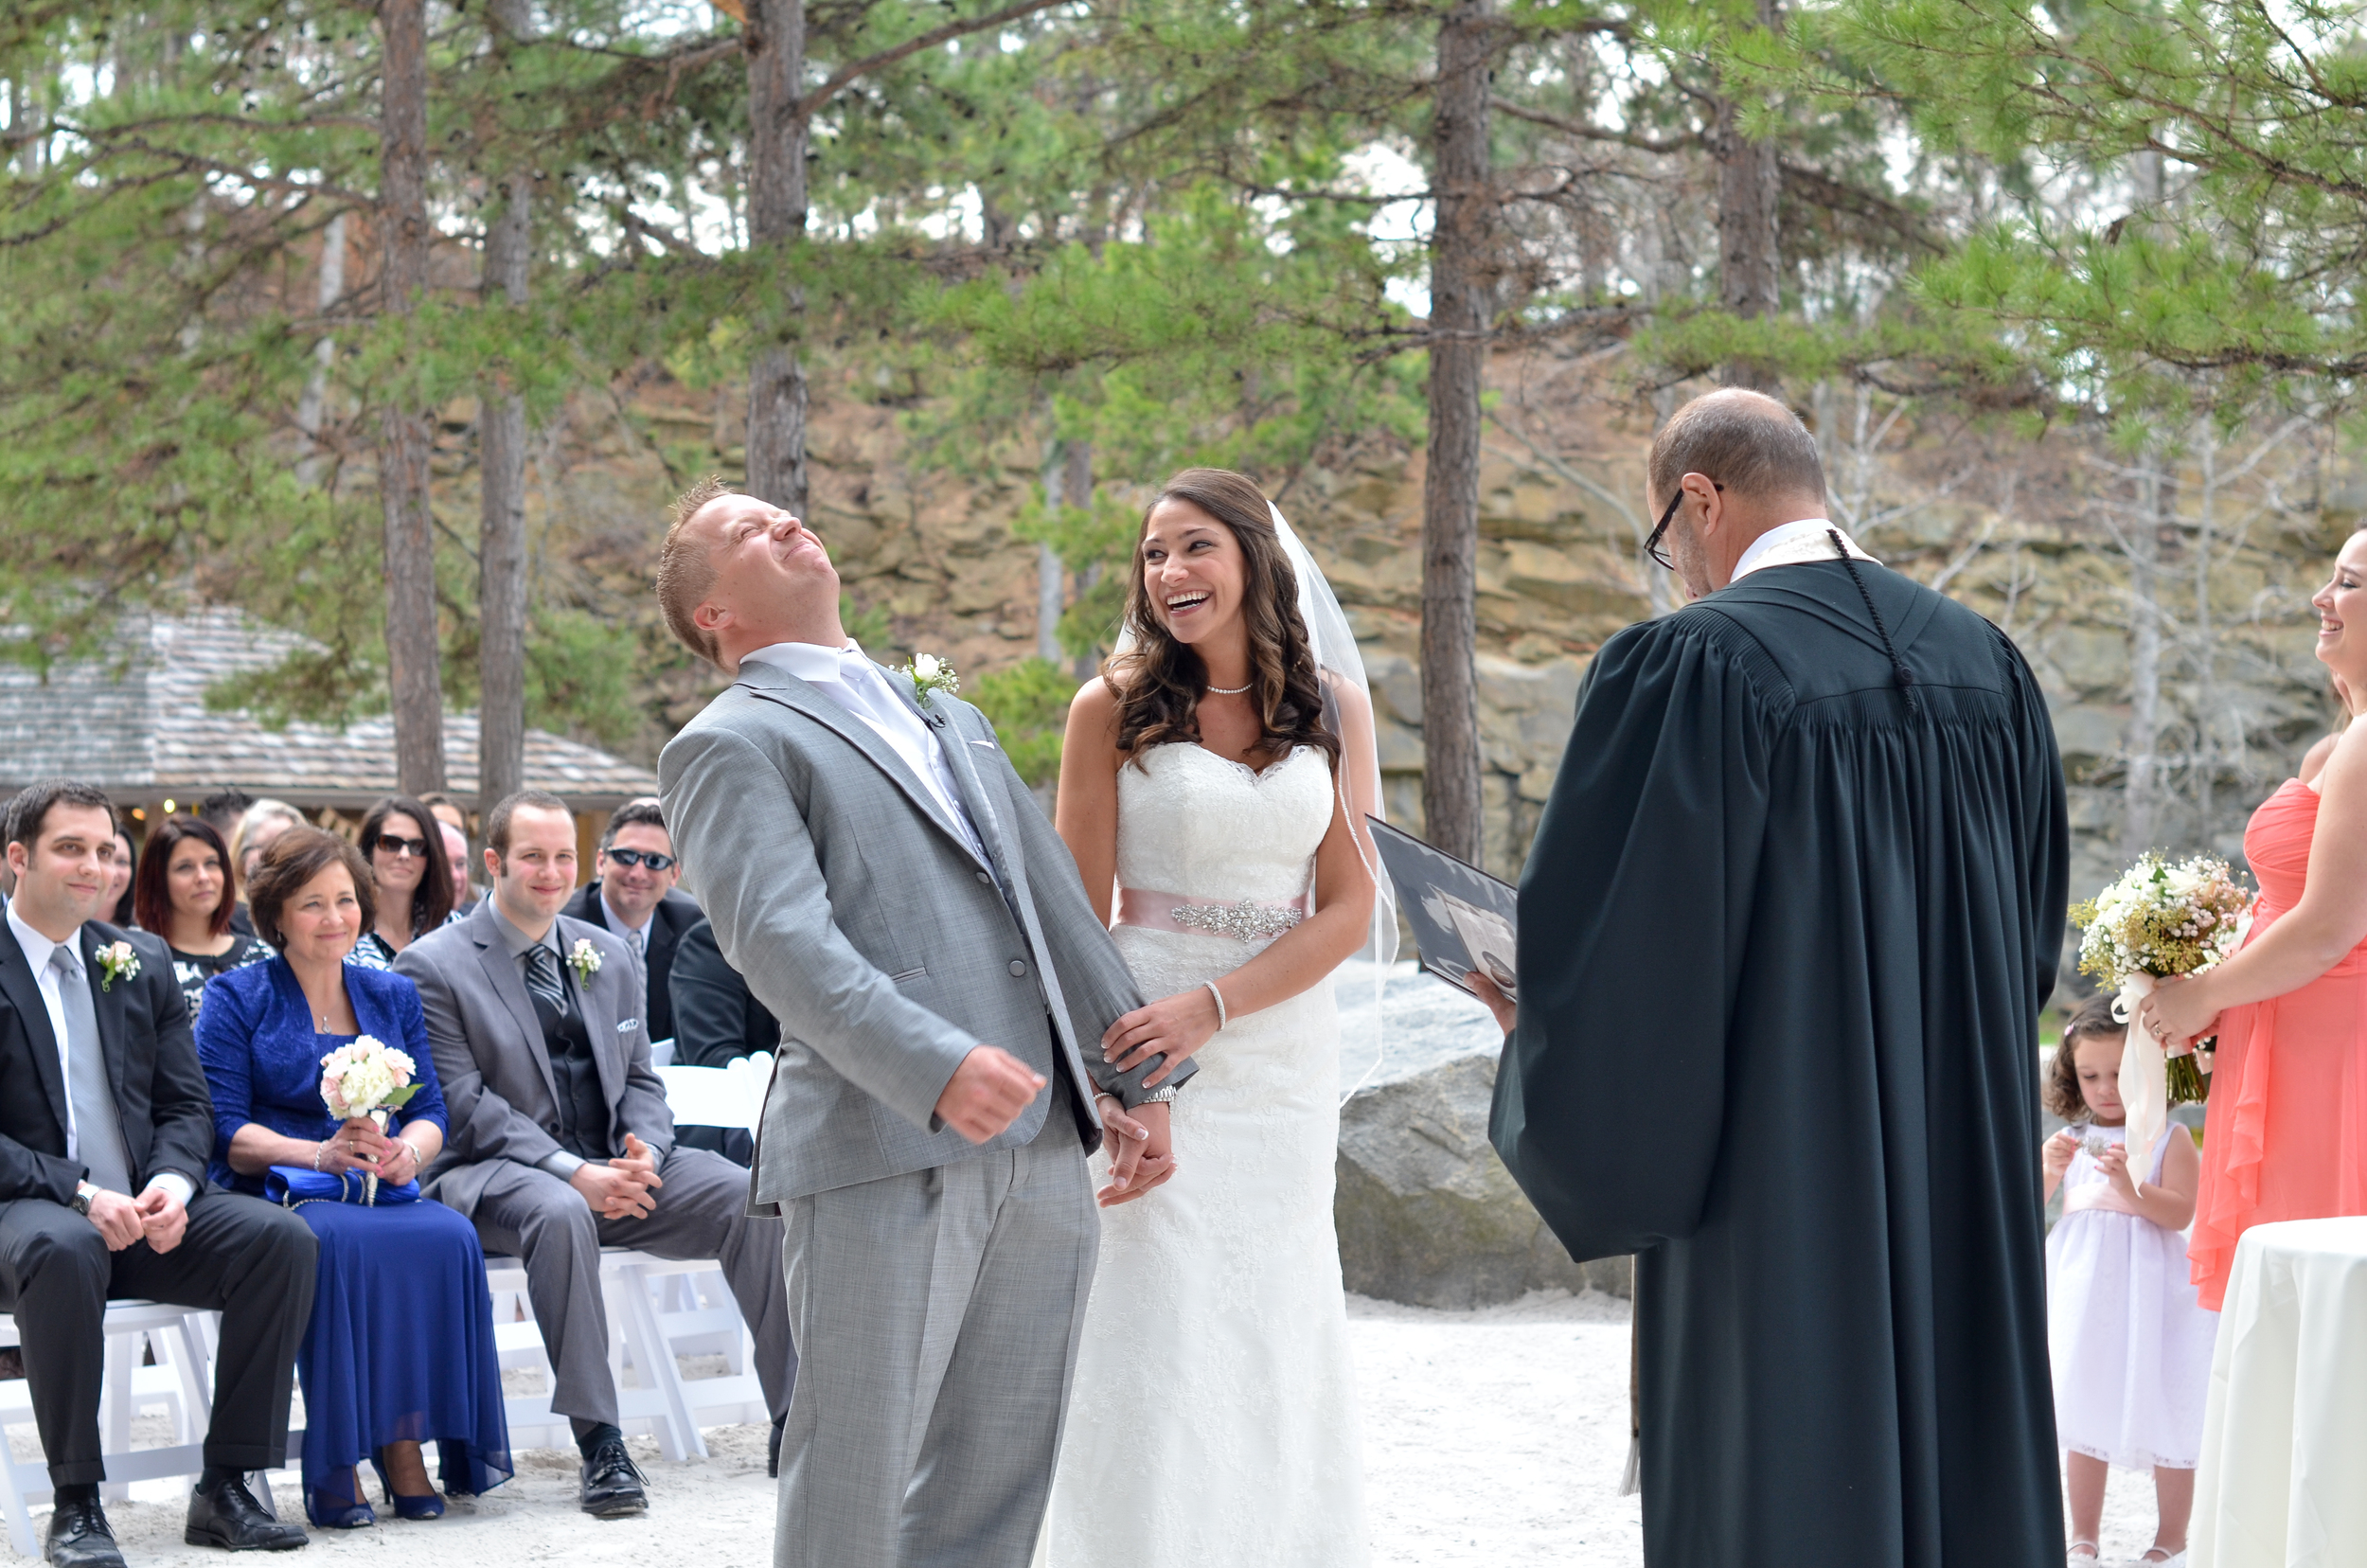 The bride's father joked about how he got to know the groom through his Facebook posts and photos before meeting him in person.